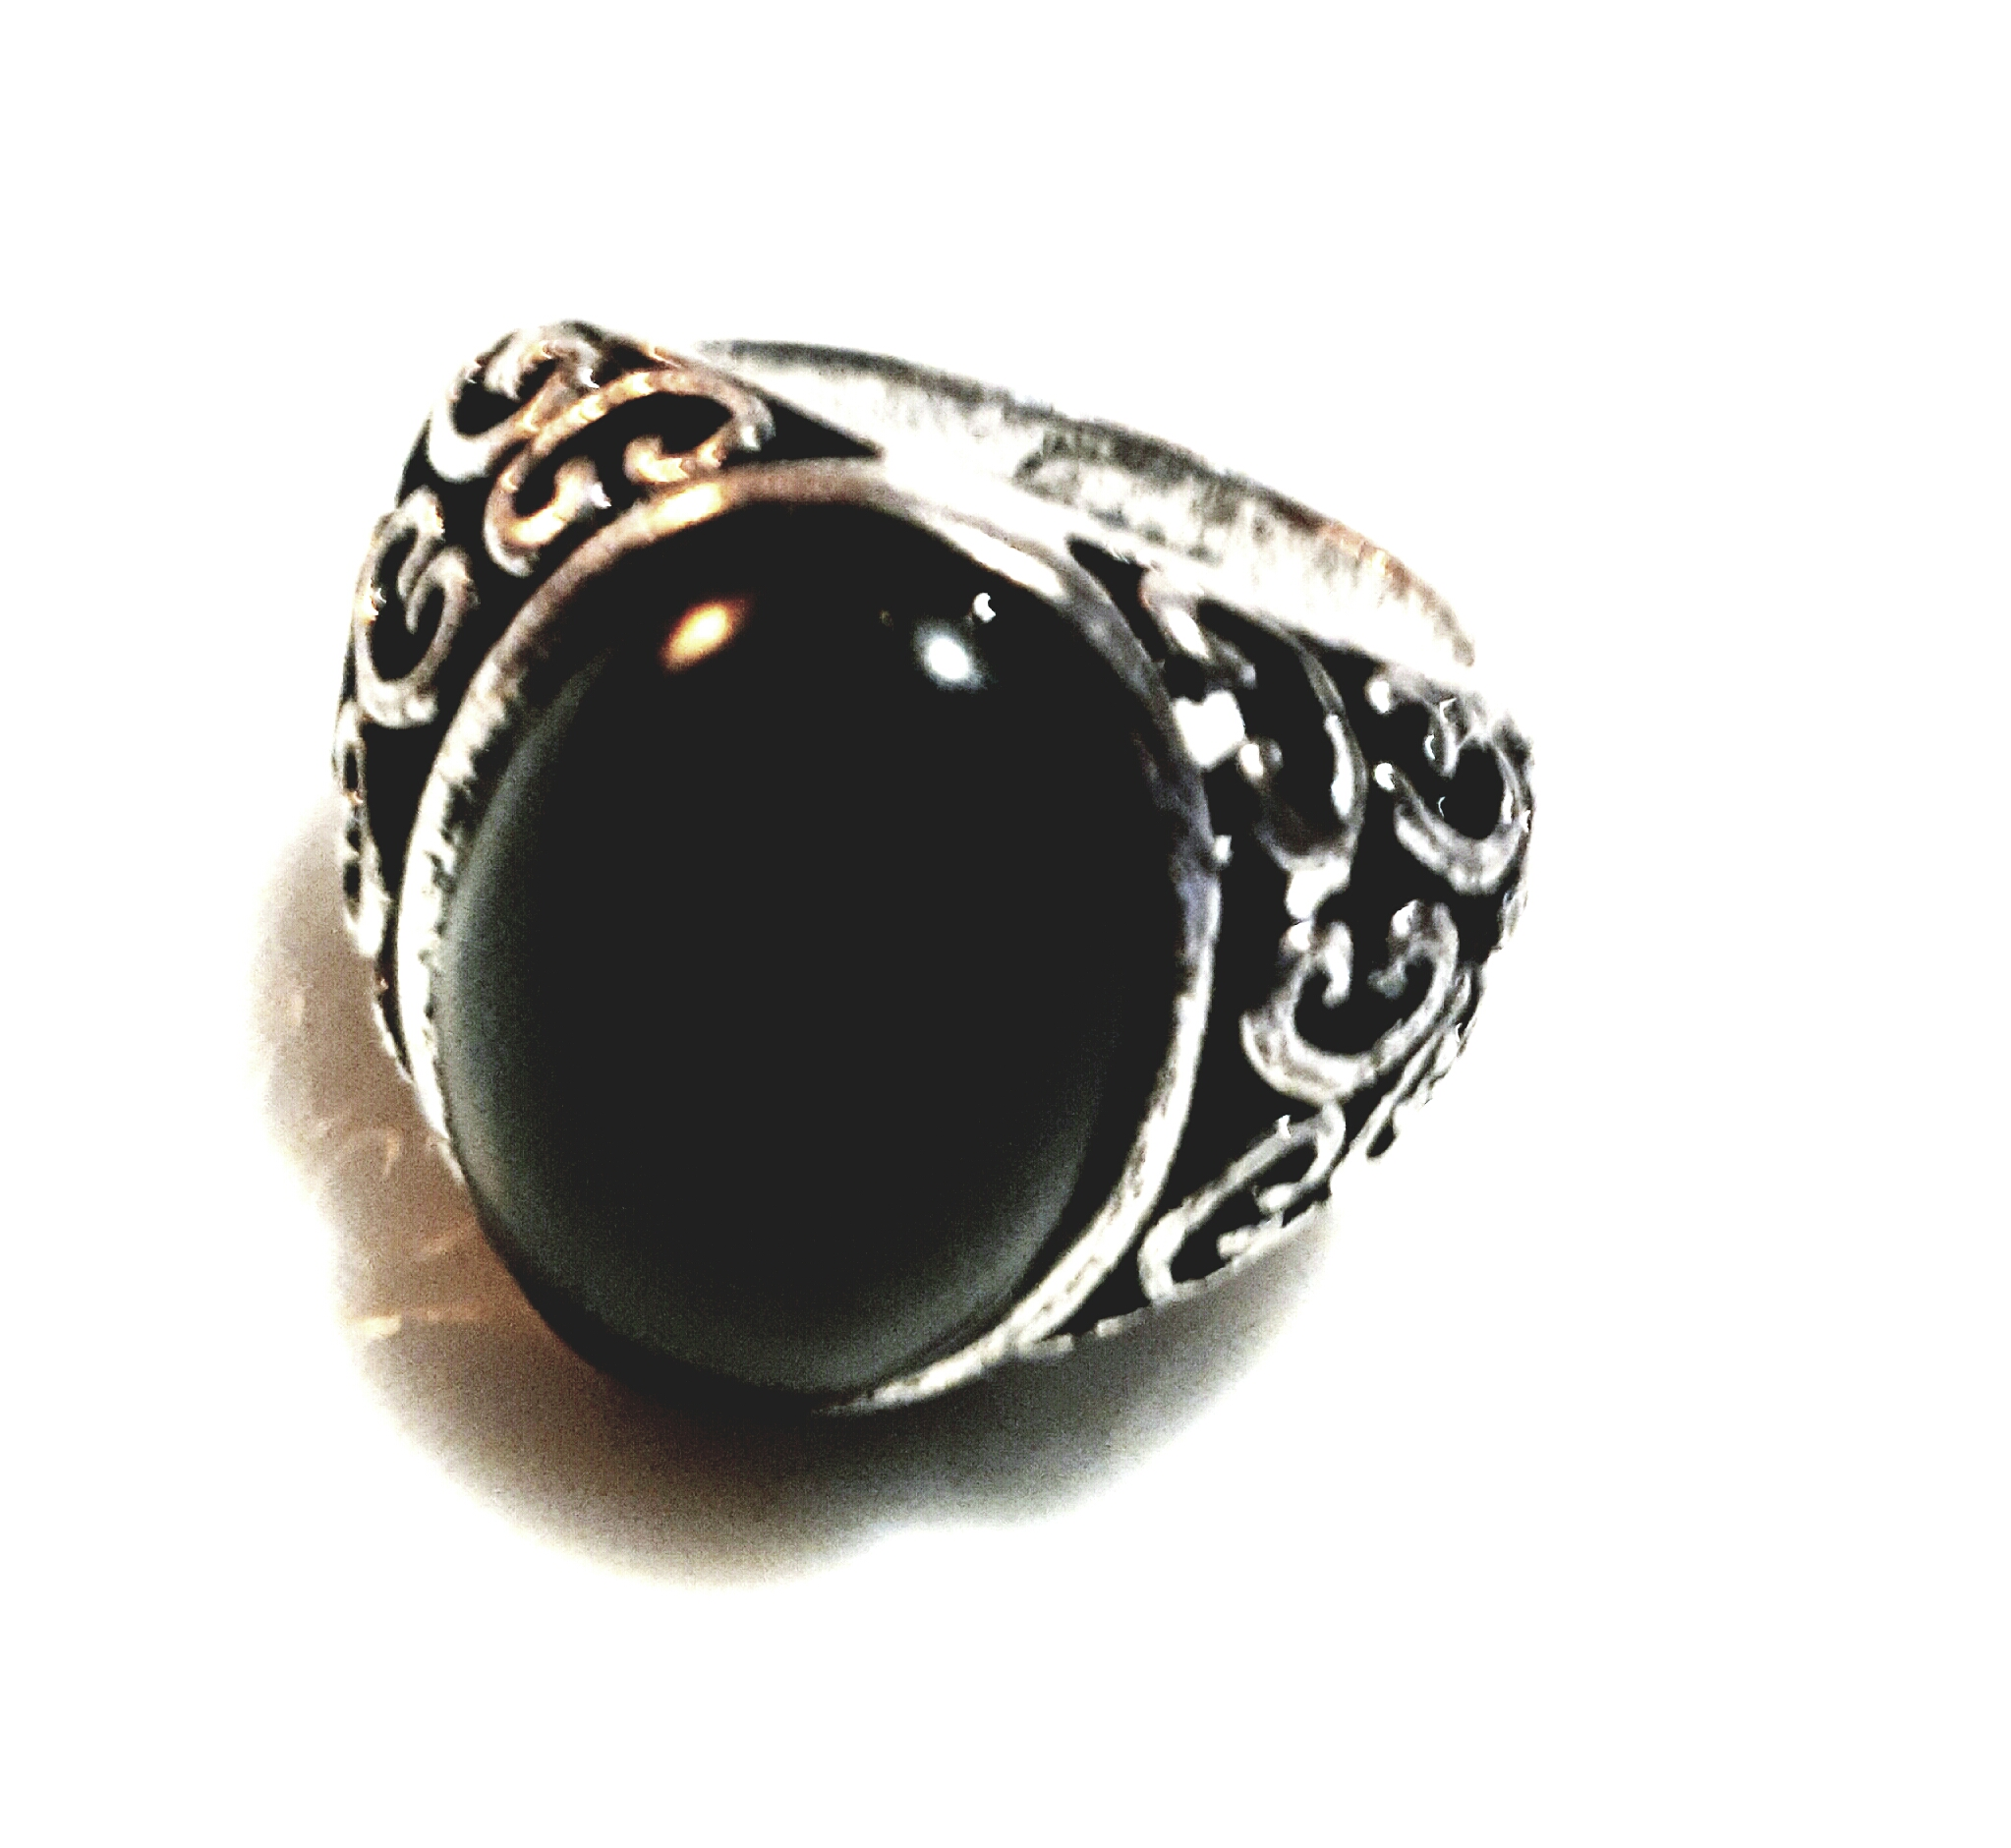 rebelsmarket_goth_old_silver_metal_antique_look_black_oval_engraved_design_ring_size_sml_rings_3.jpg